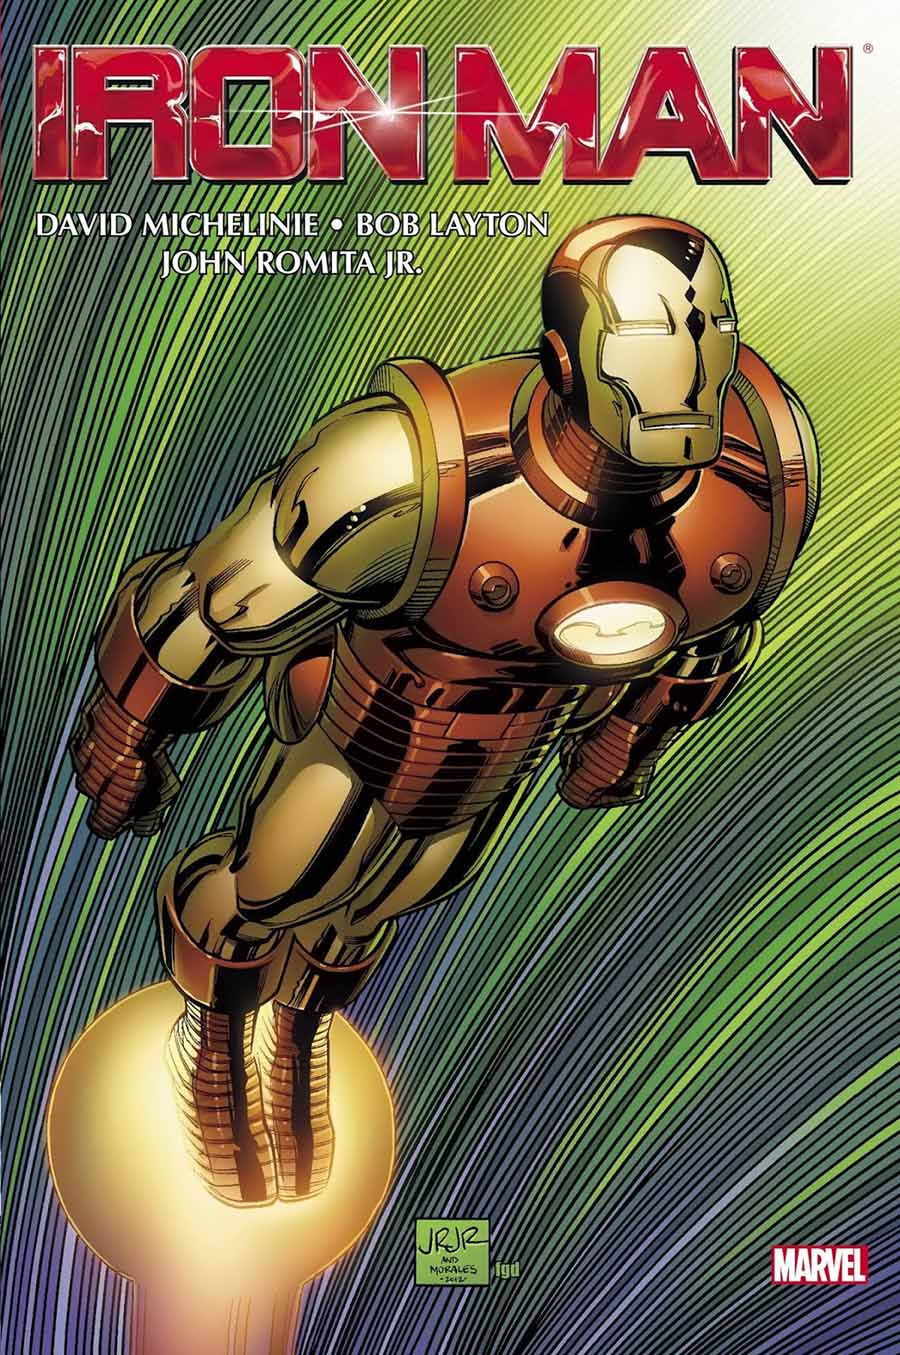 Iron Man (Michelinie/Layton)